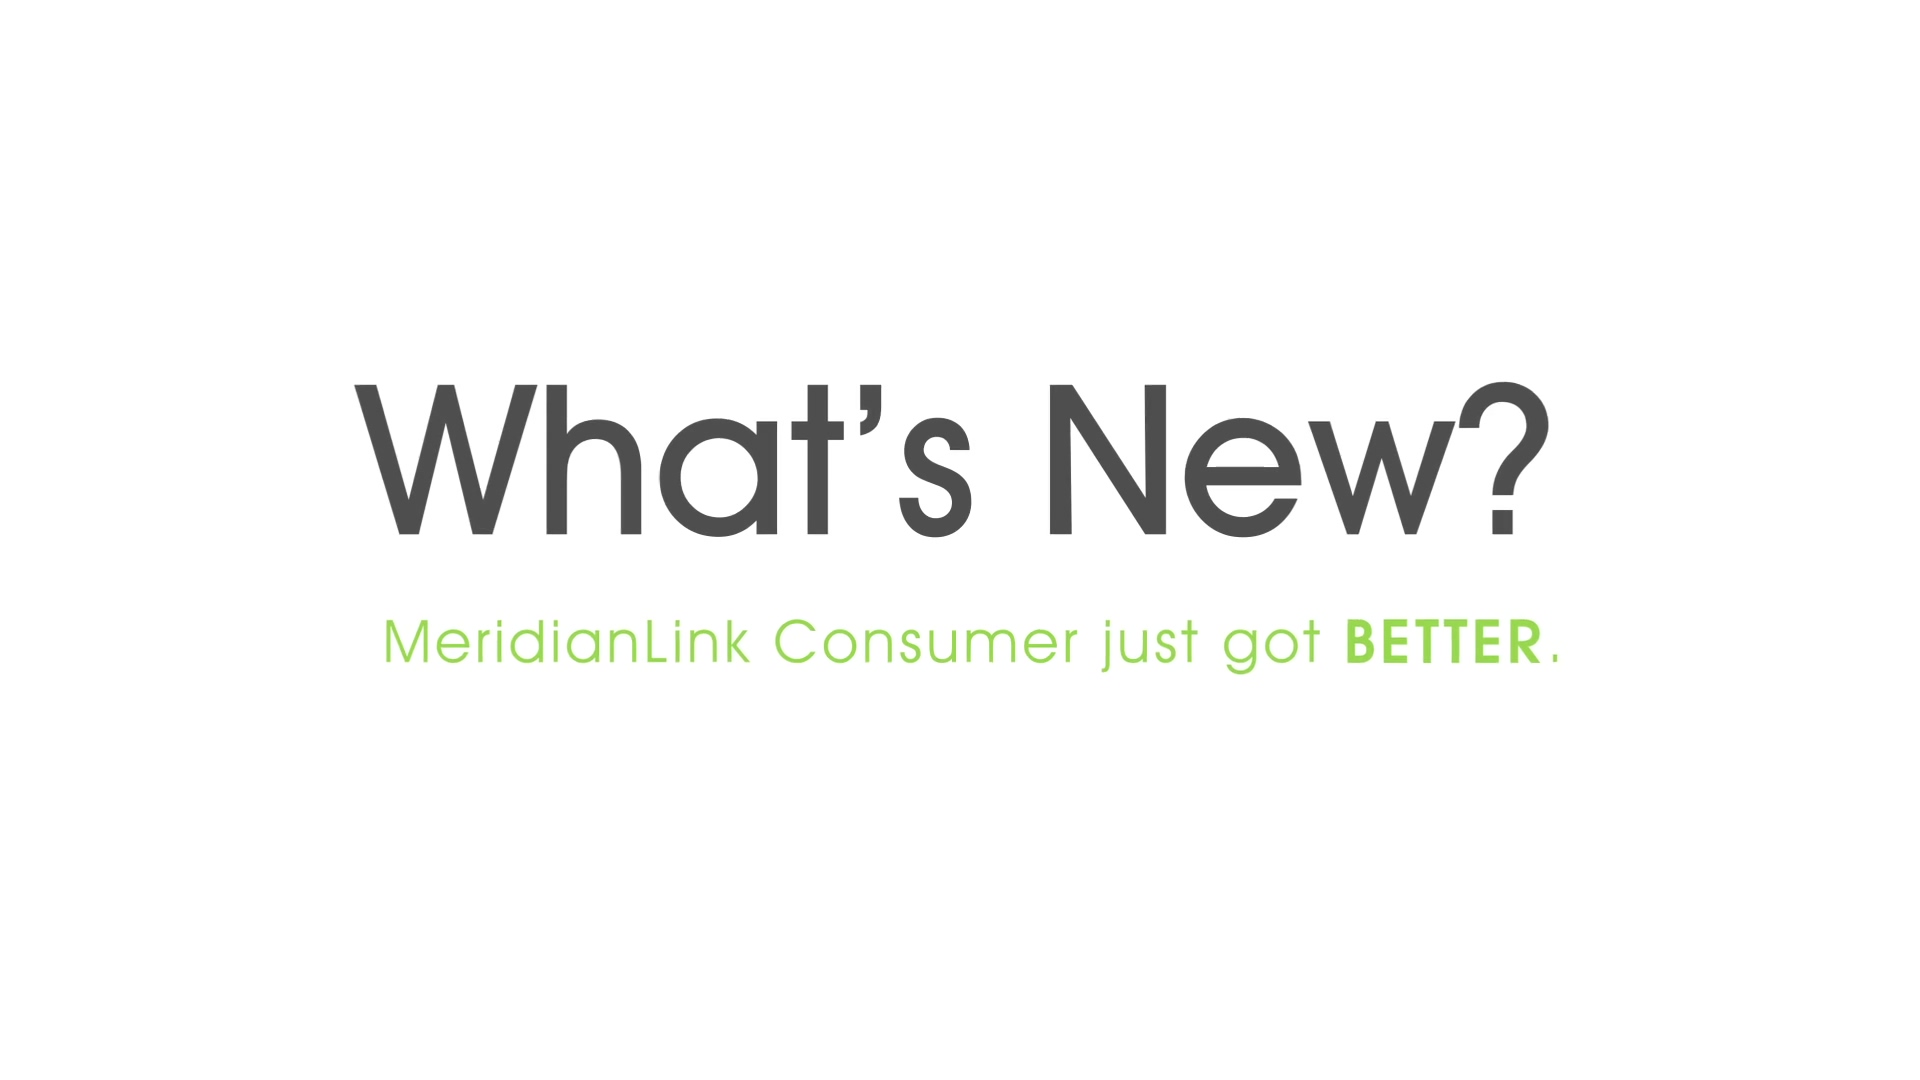 New-MeridianLink Consumer-ModernExperience